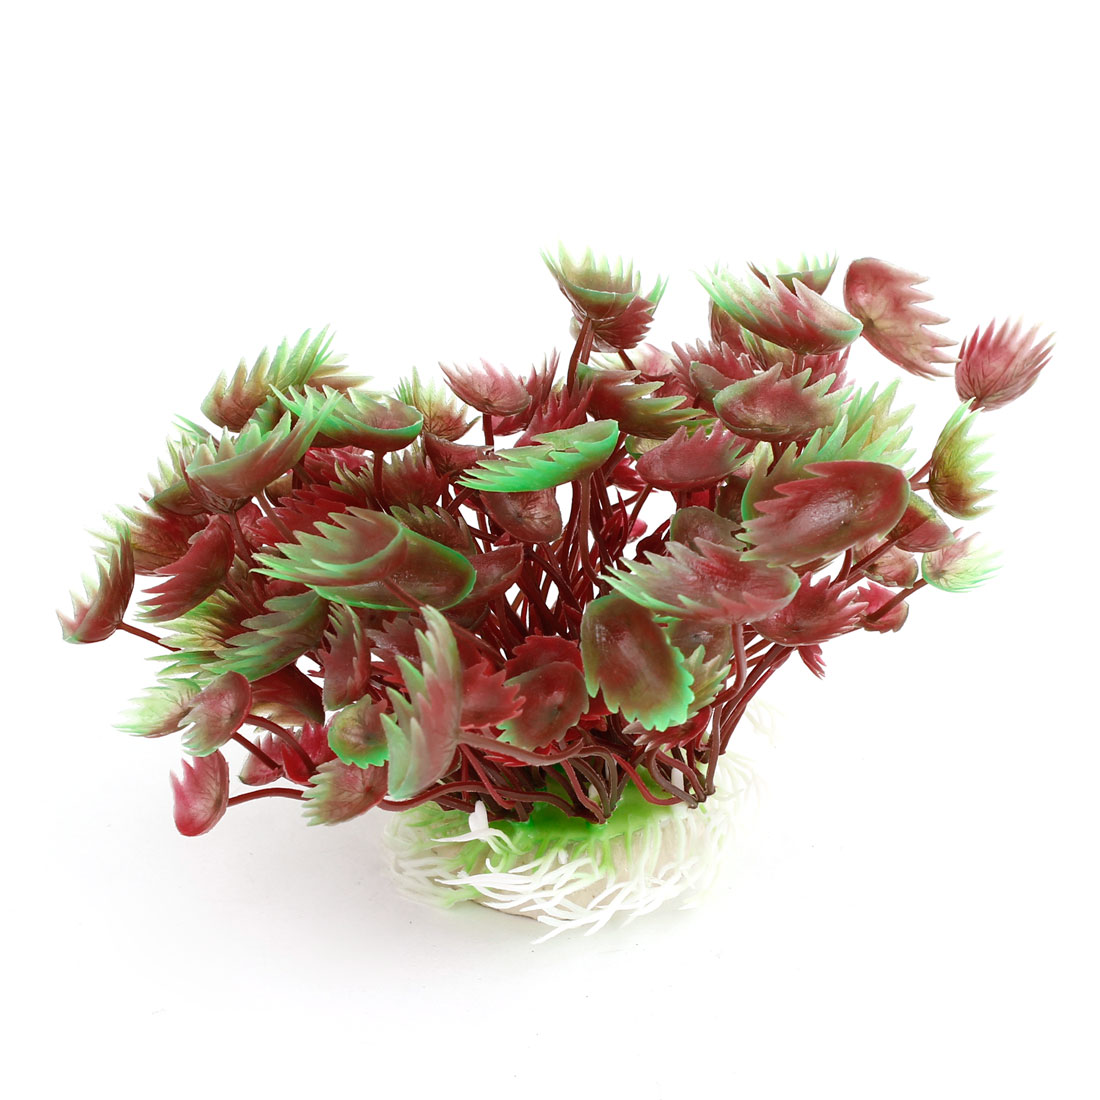 "Ceramic Base Manmade Plastic Green Dark Red Vivid Grass 4.1"" High for Fish Tank"